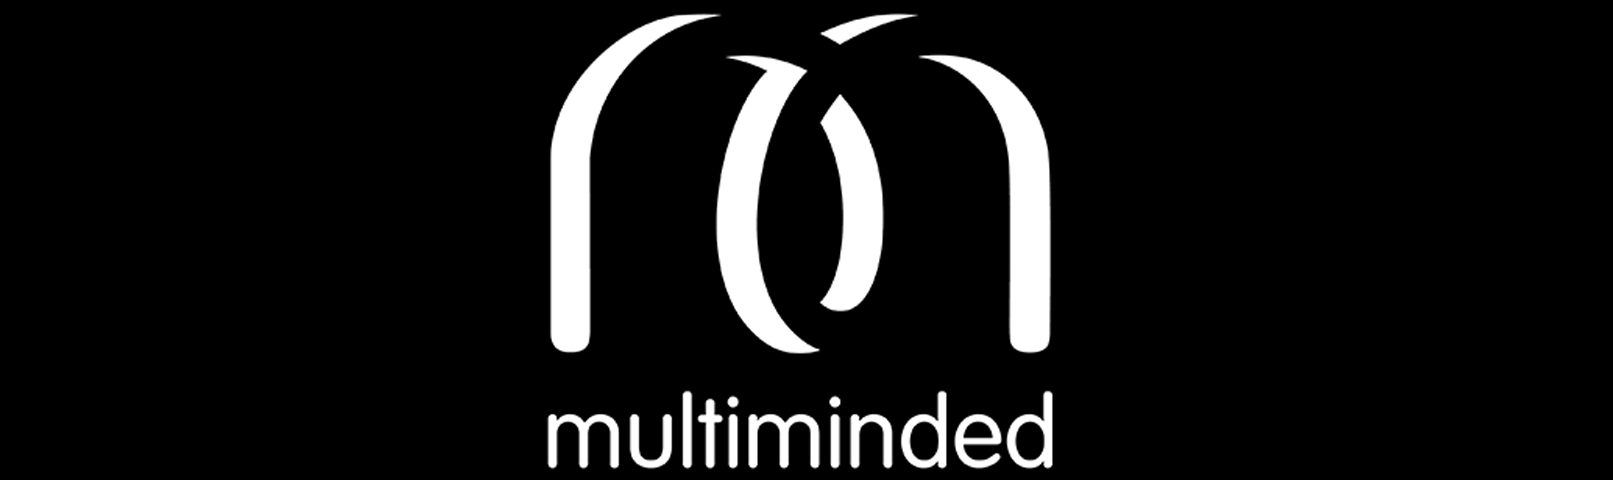 Multiminded Digital logo